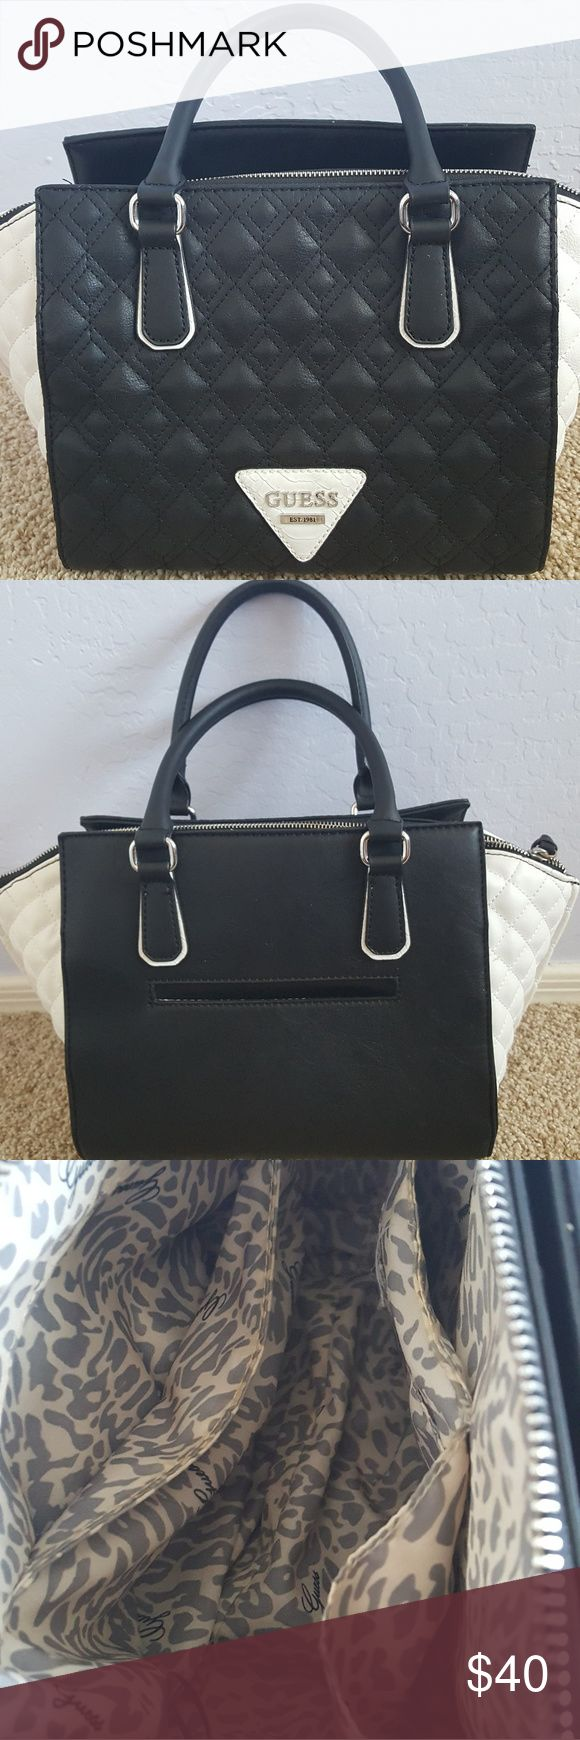 Black and white zipper purse Guess black and white pursr Guess Bags Shoulder Bags